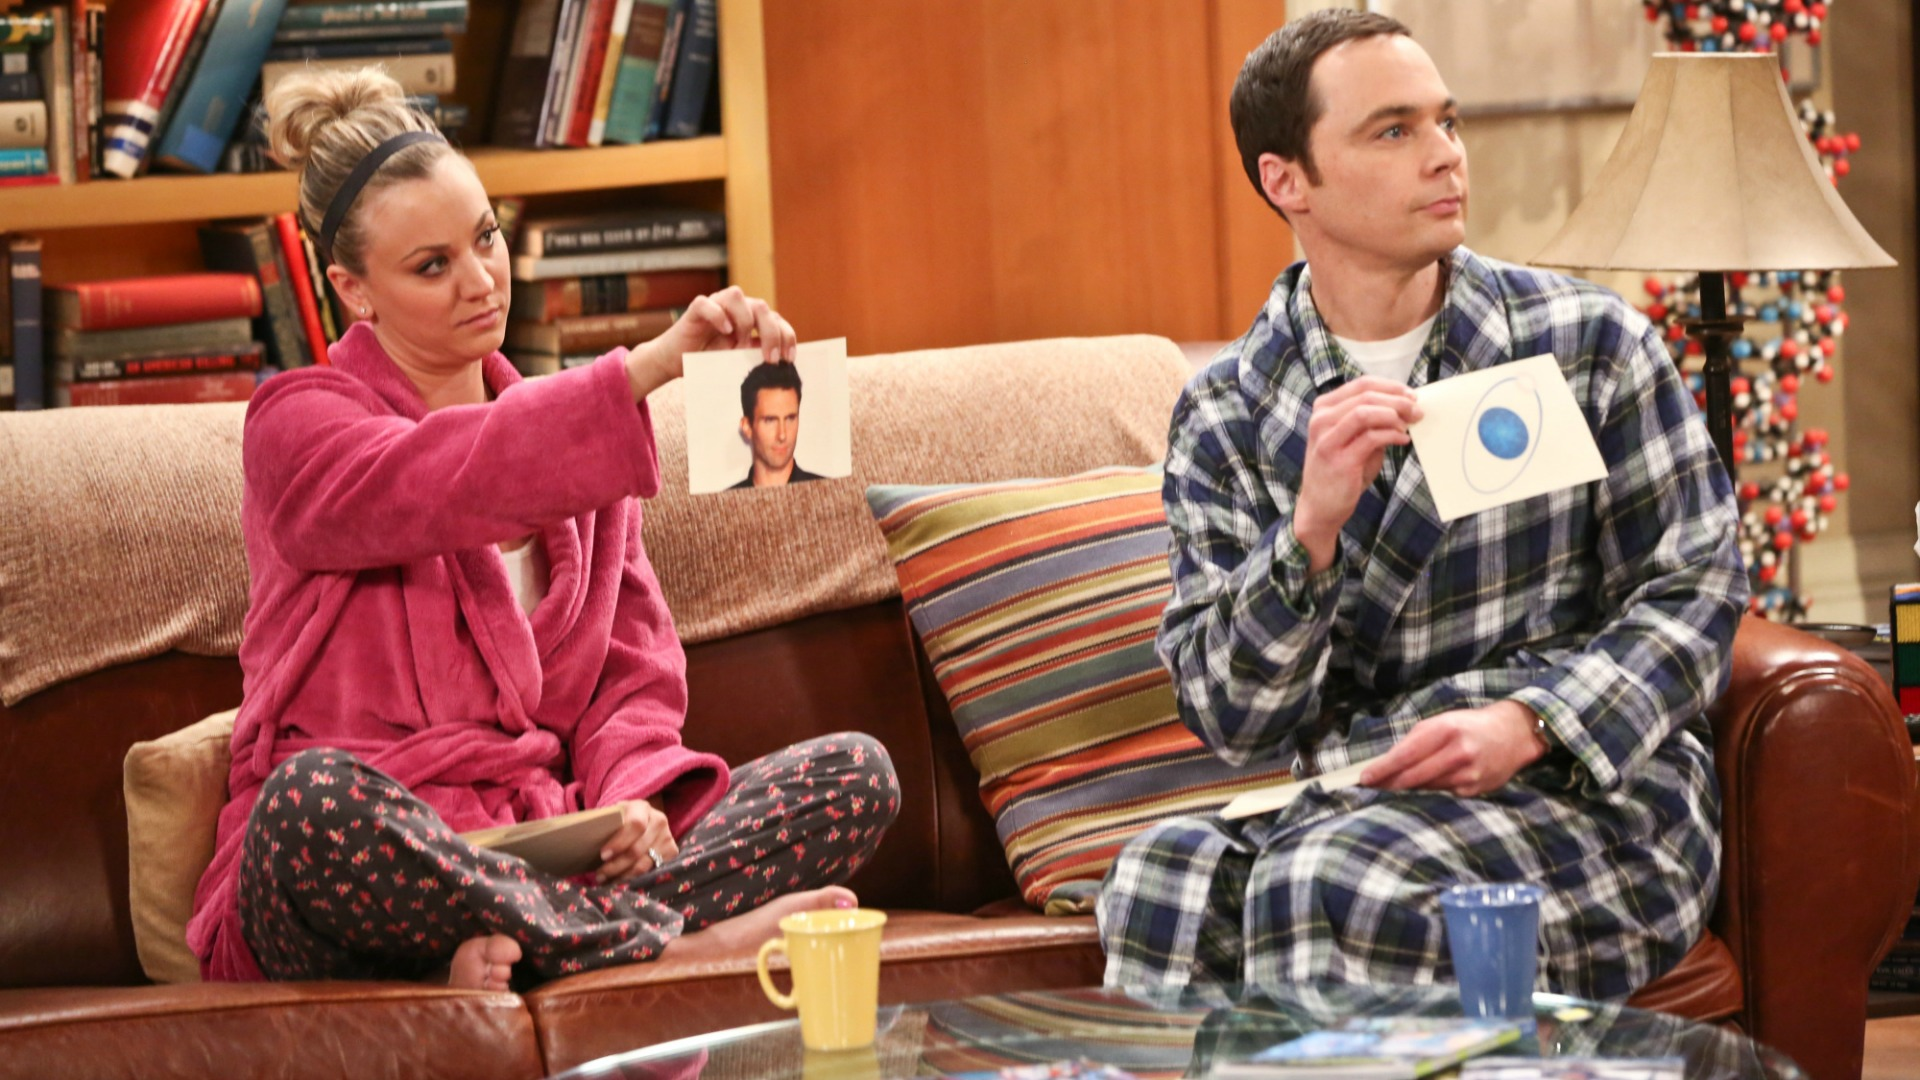 11. We laughed when Penny quizzed Sheldon on his pop-culture knowledge